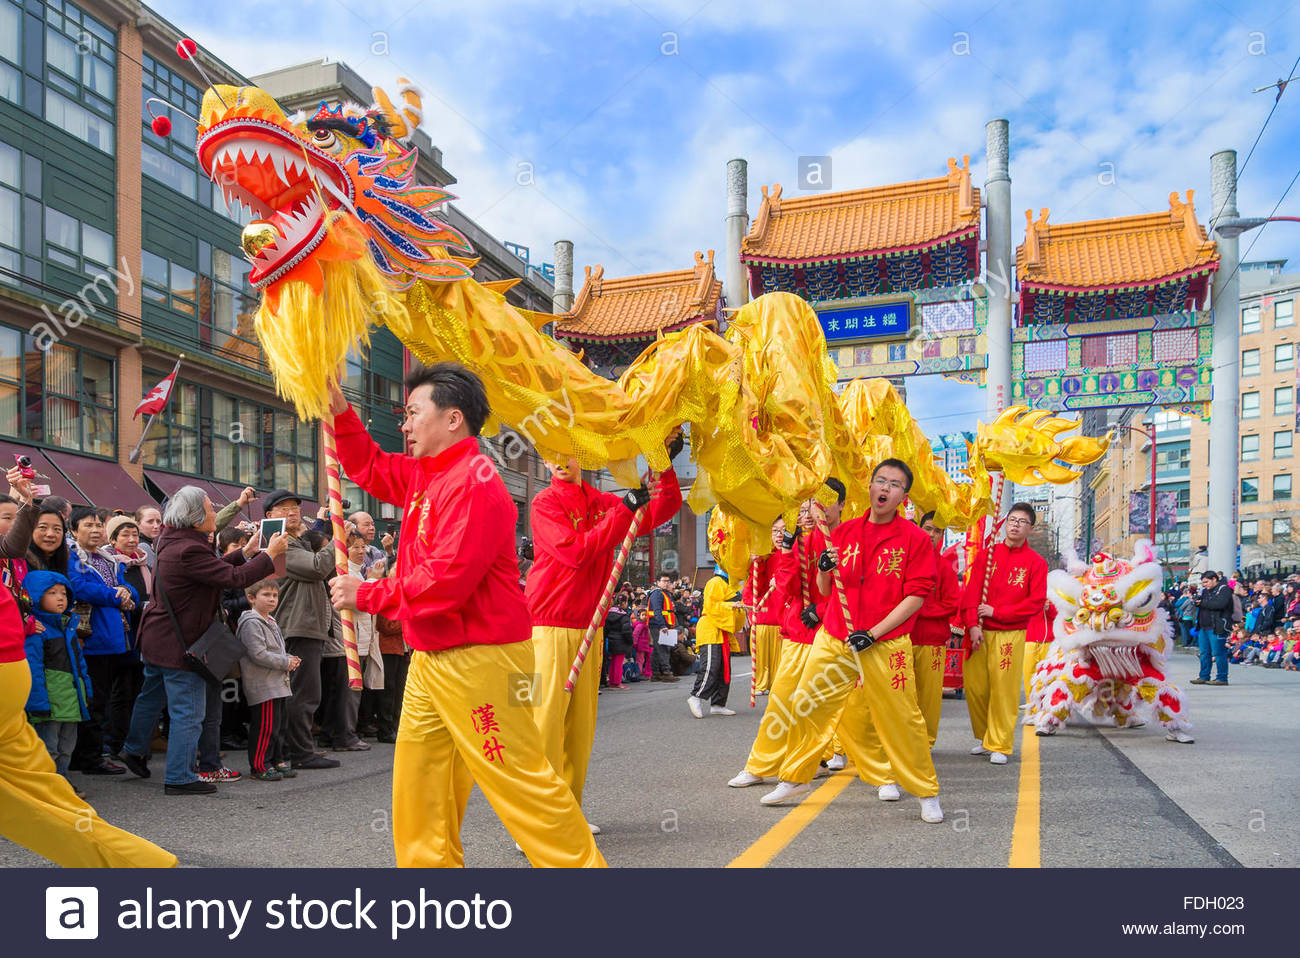 Chinese Dragon dance team, Chinese New Year Parade, Vancouver, British Columbia, Canada - Stock Image